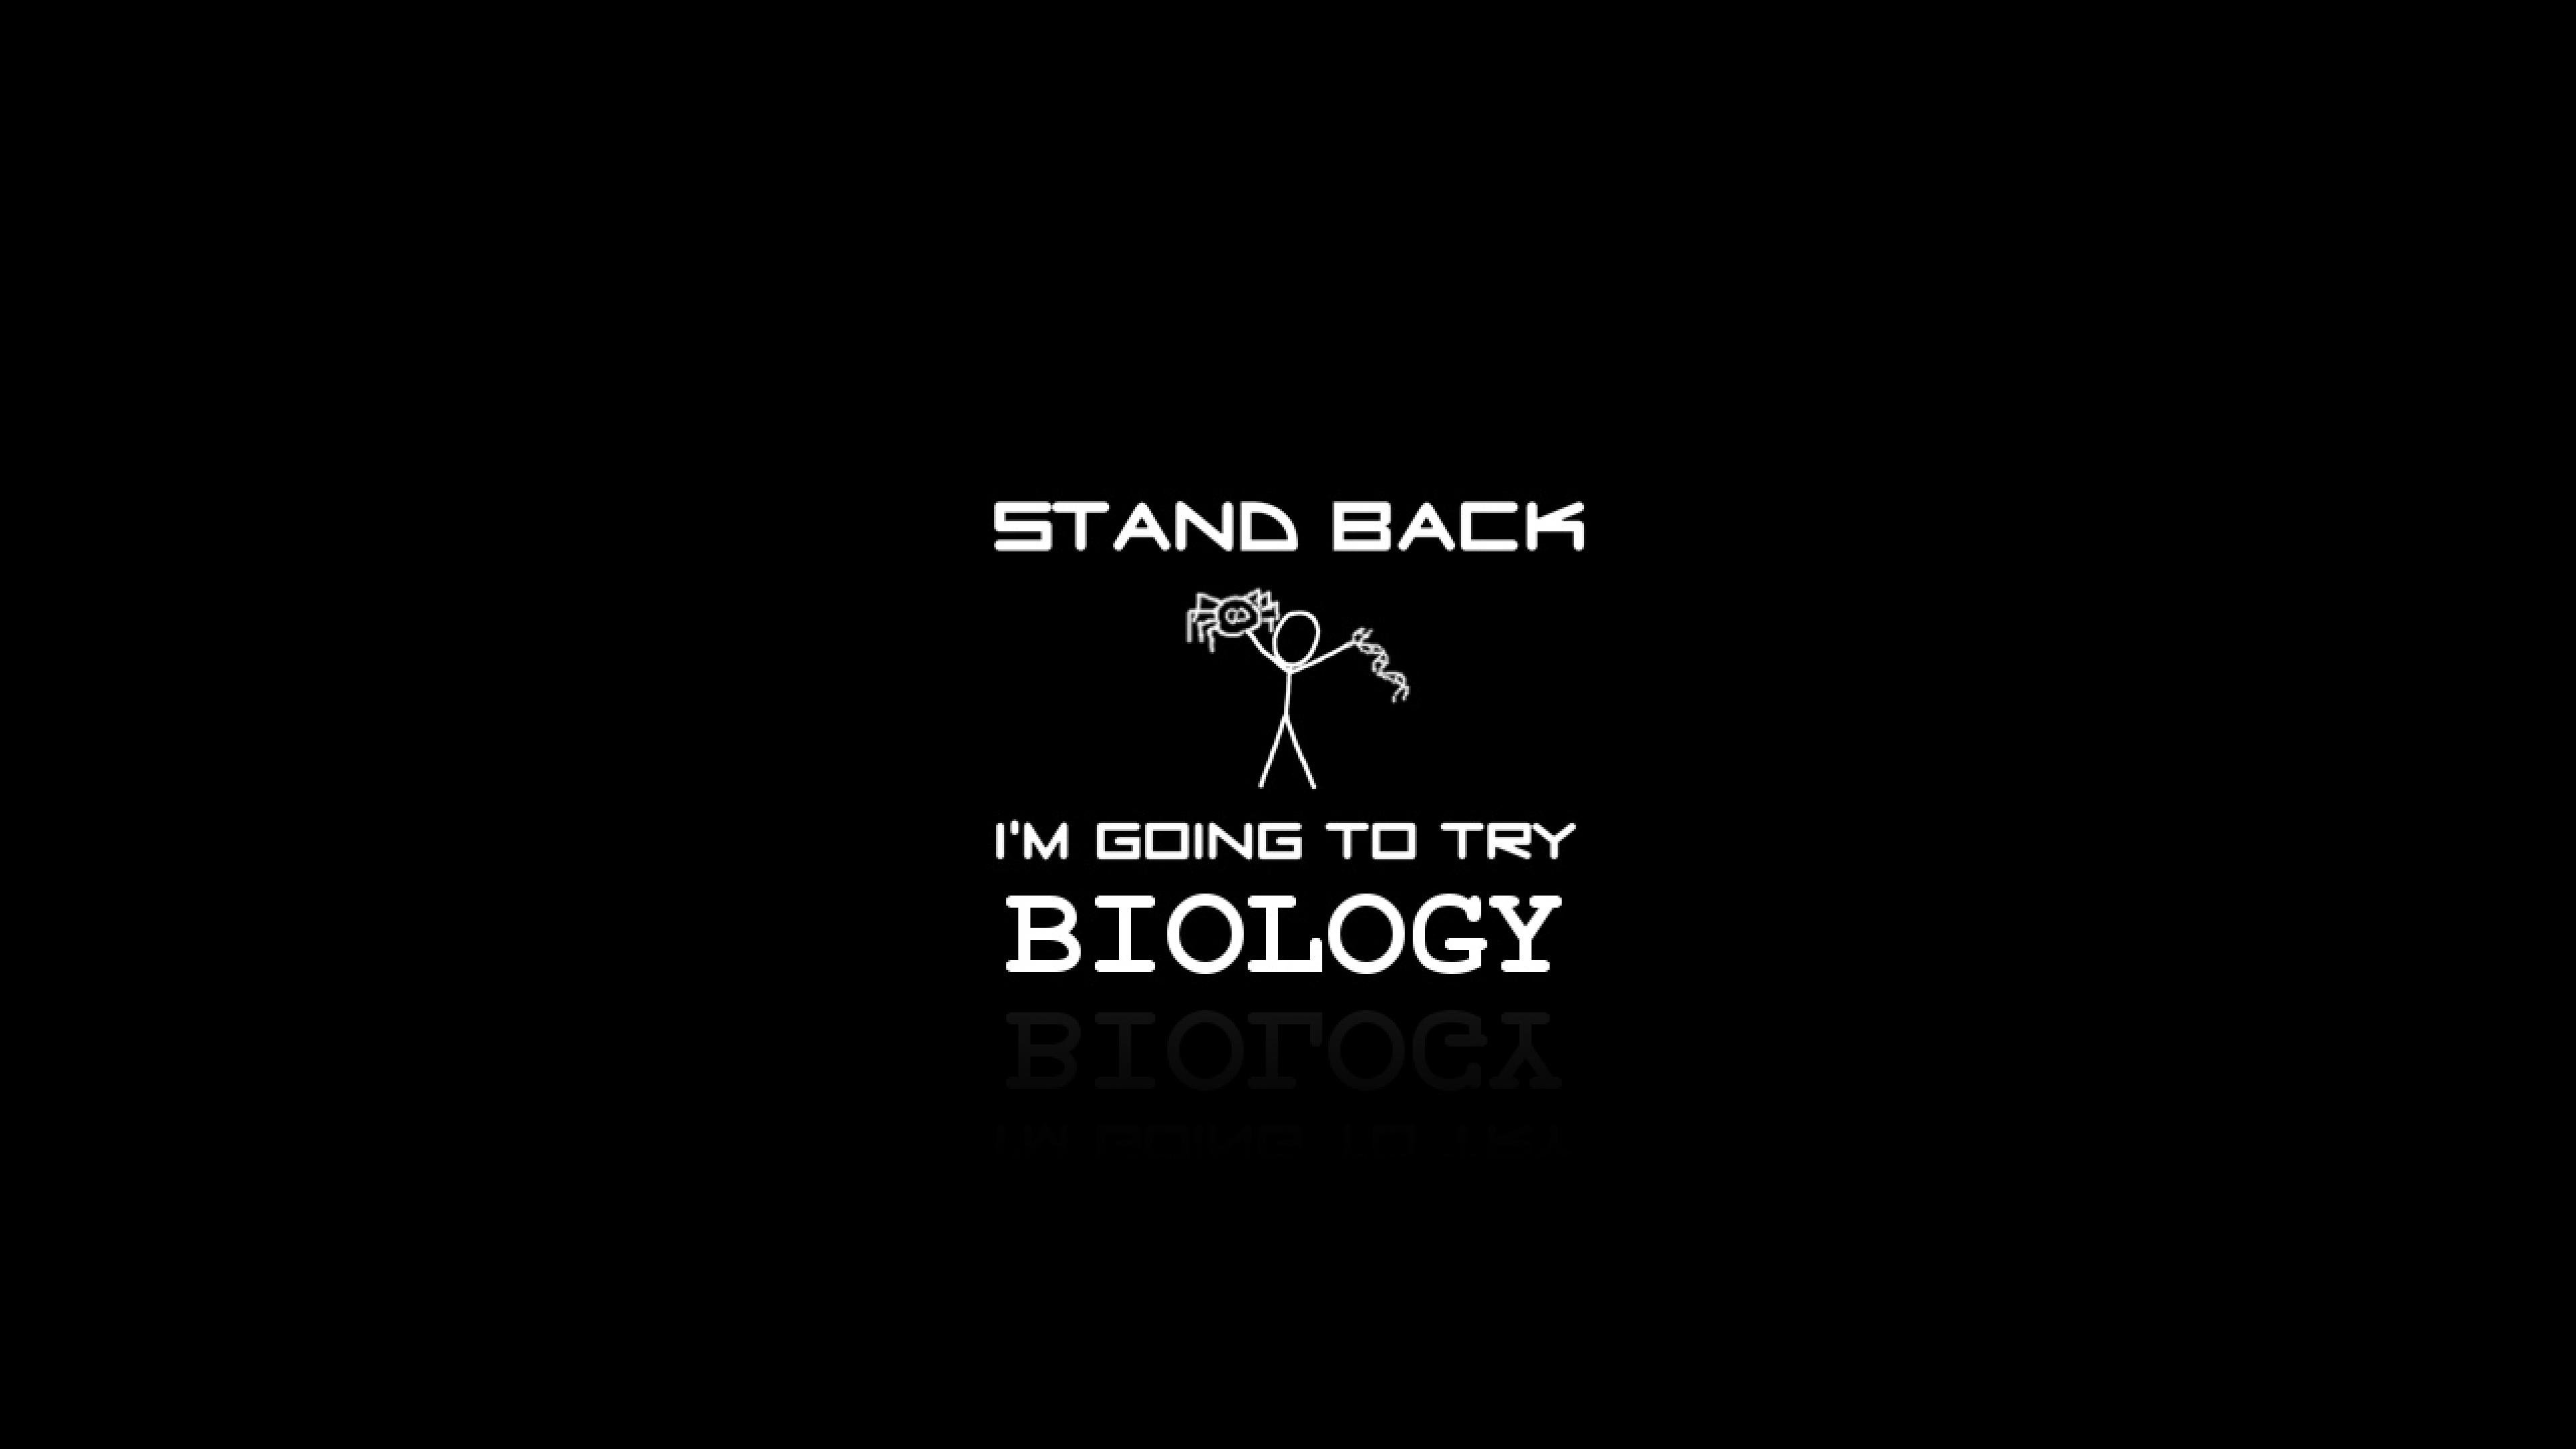 stand back biology v2 Ultra or Dual High Definition 2560x1440 3840x2160